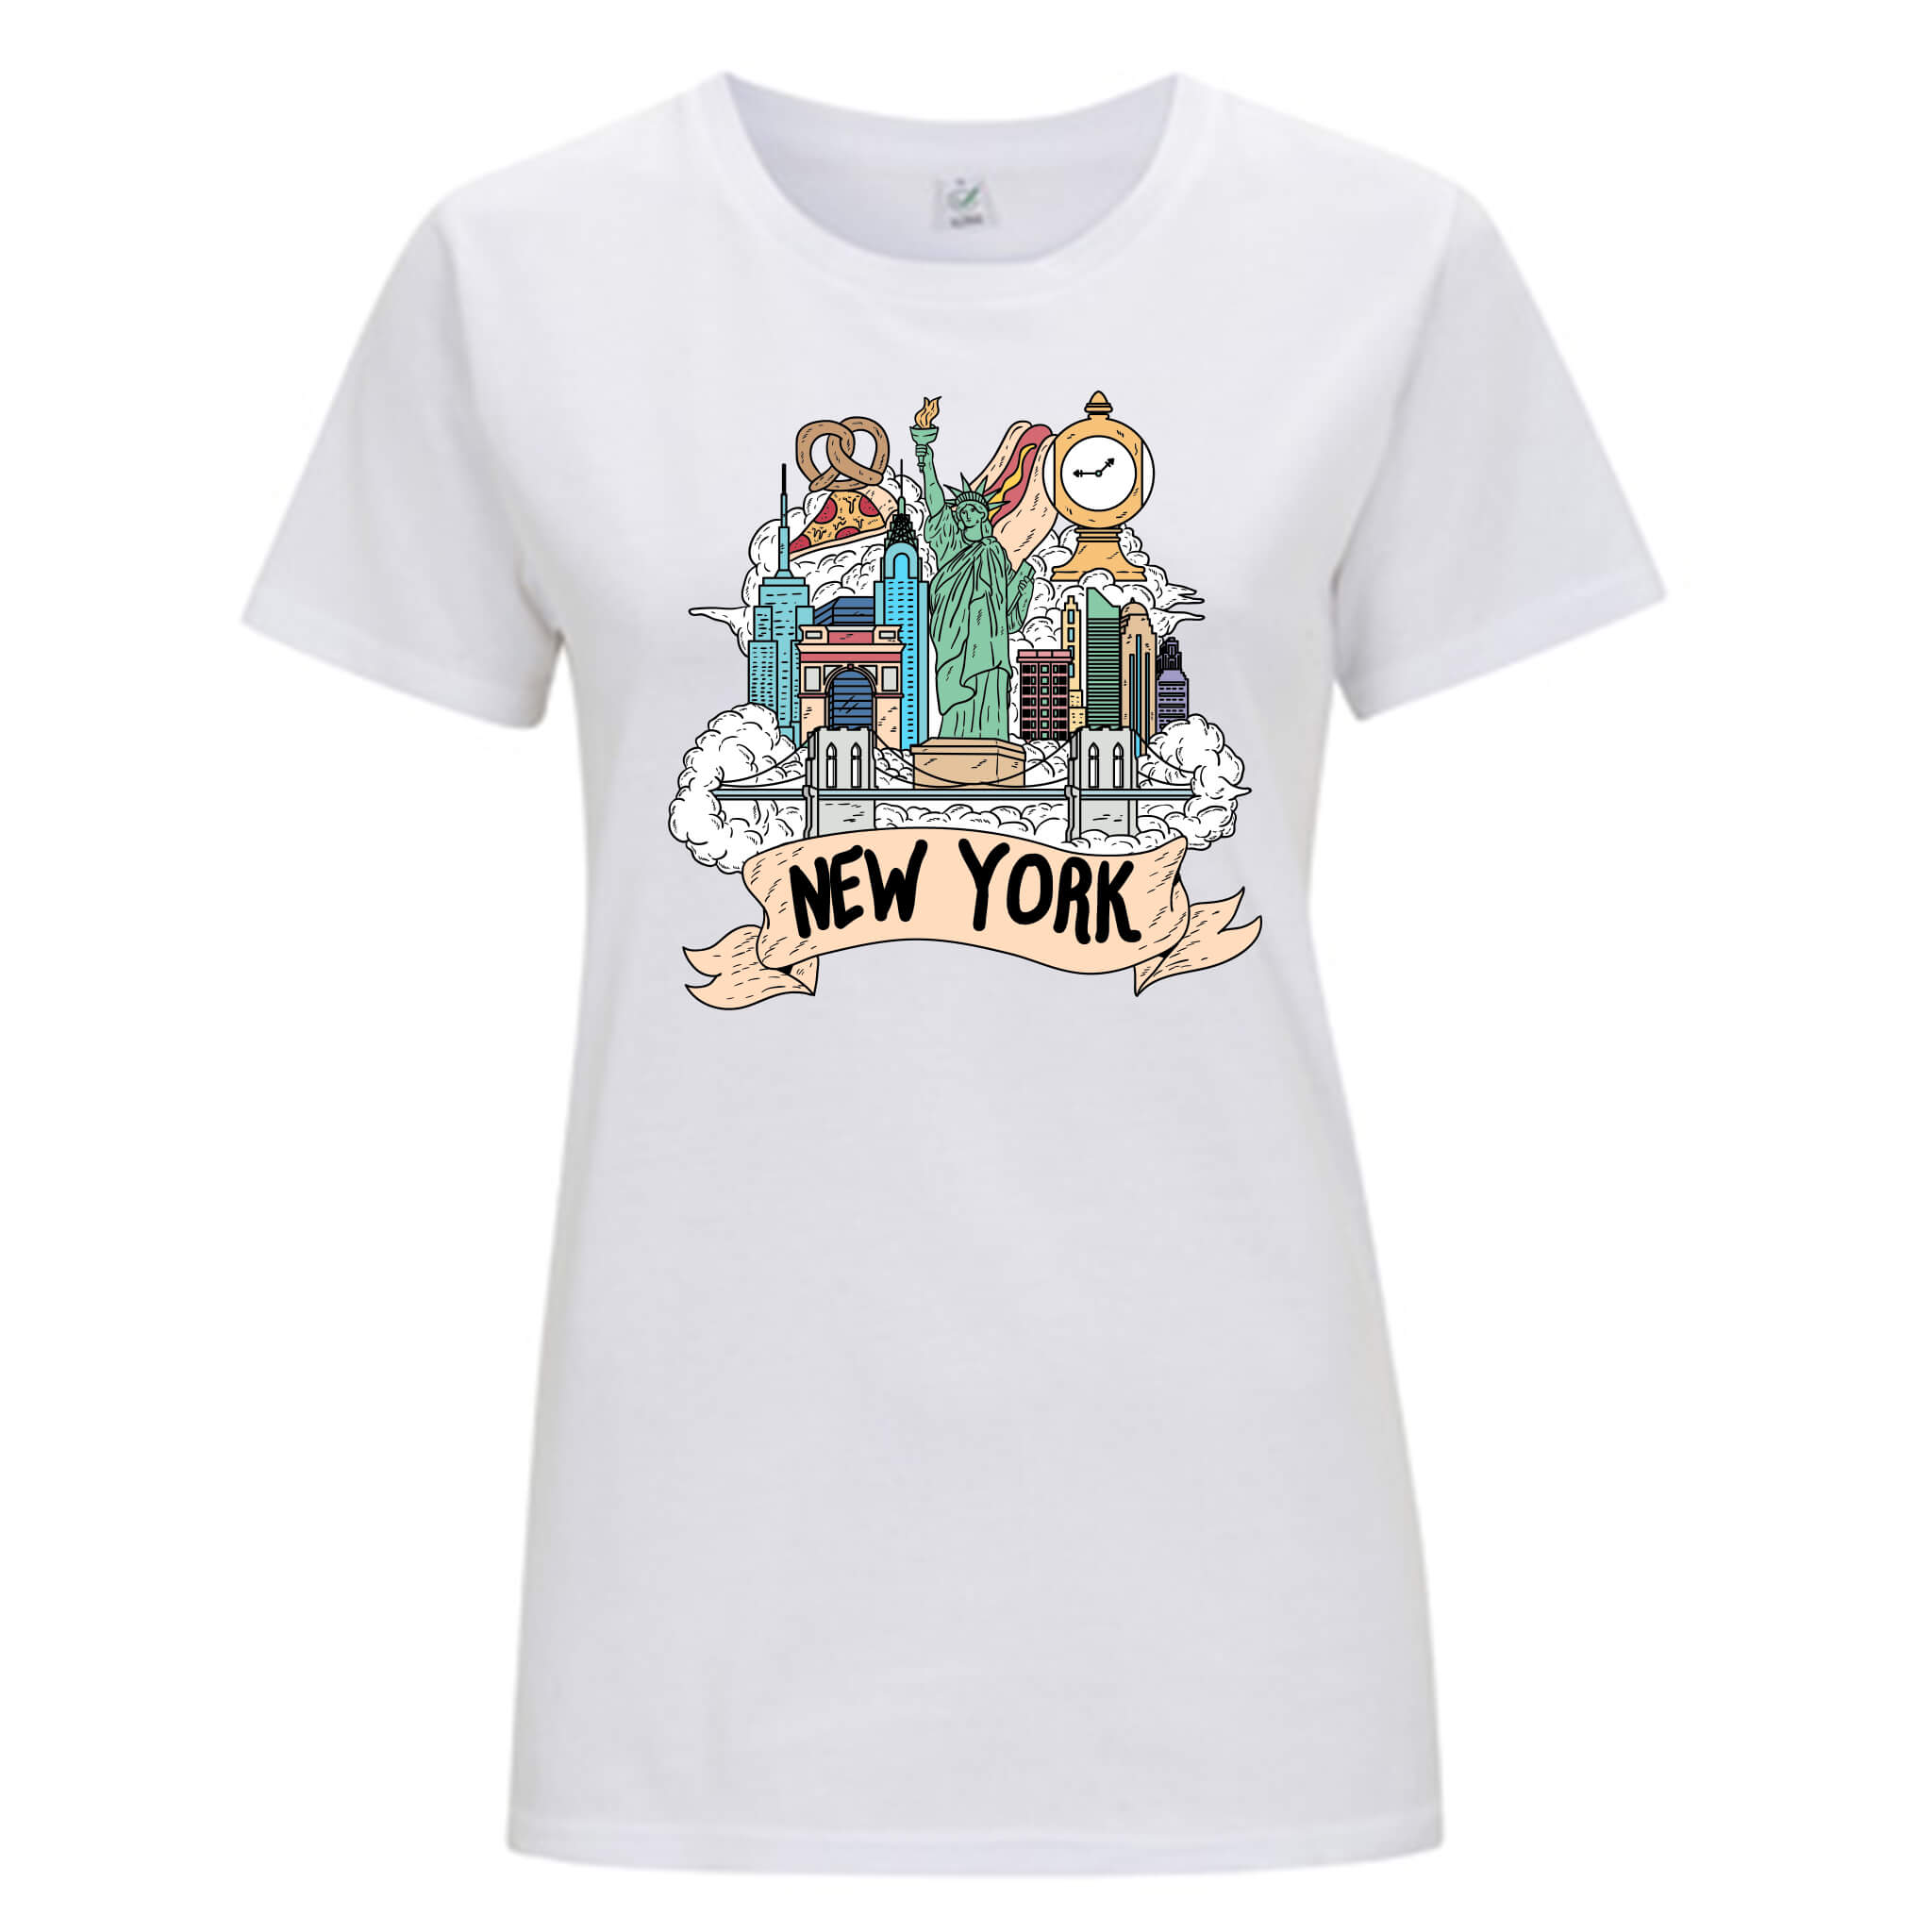 Località: New York - T-shirt Donna - T-Shirt by Fol The Brand